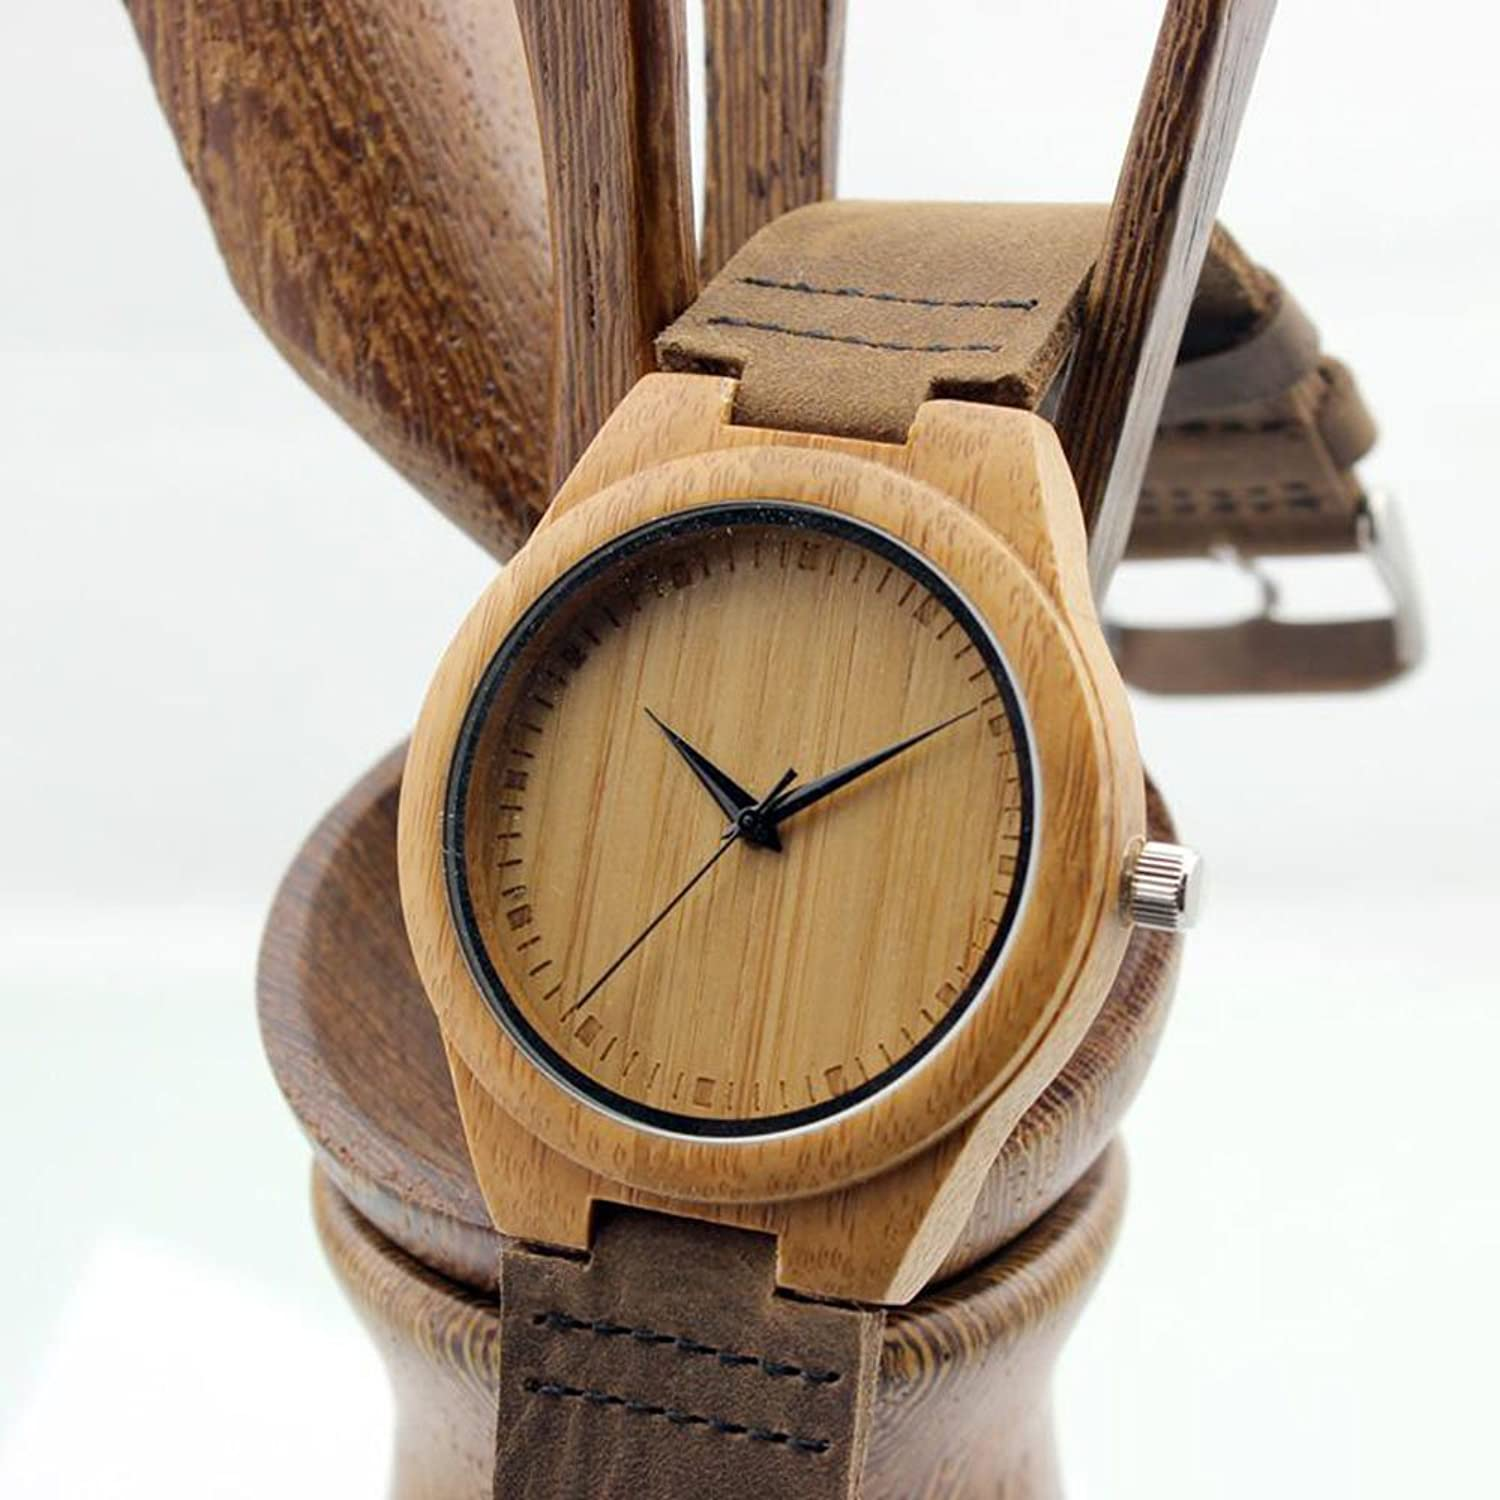 flops a jordwatch fun watches the unique jord come momma in flip wood by w